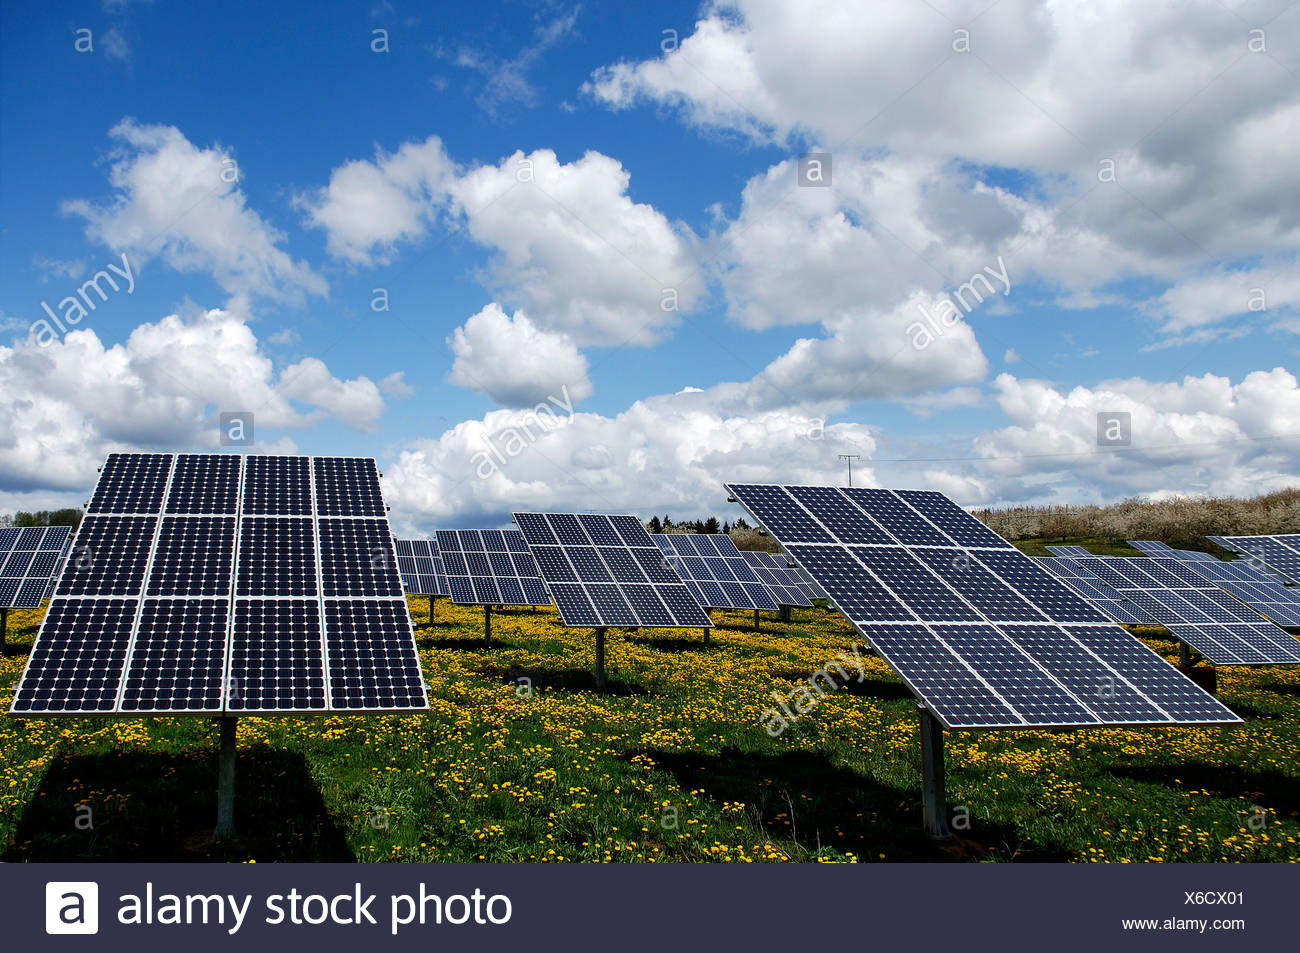 Photovoltaics, solar panels in a field near Oberruesselbach, Middle Franconia, Bavaria, Germany, Europe - Stock Image